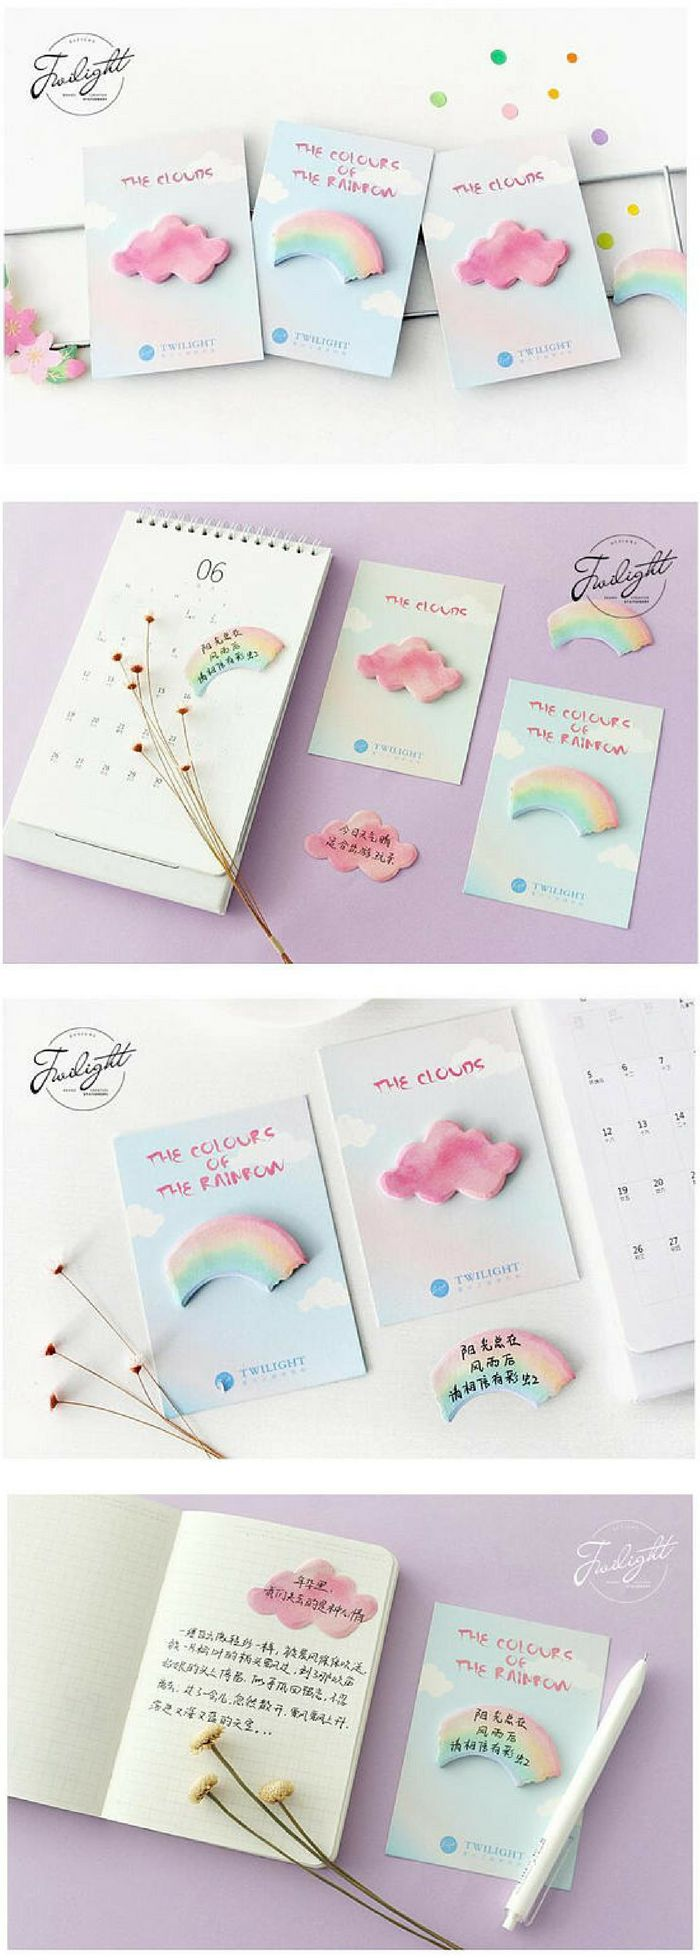 Wow these sticky notes are the prettiest! So cute! rainbow and clouds, very girly and on trend! Pretty post its like this are too nice to write on but I would use them as page markers in my bullet journal or bookmarks. #ad #bujo #rainbow #stationery